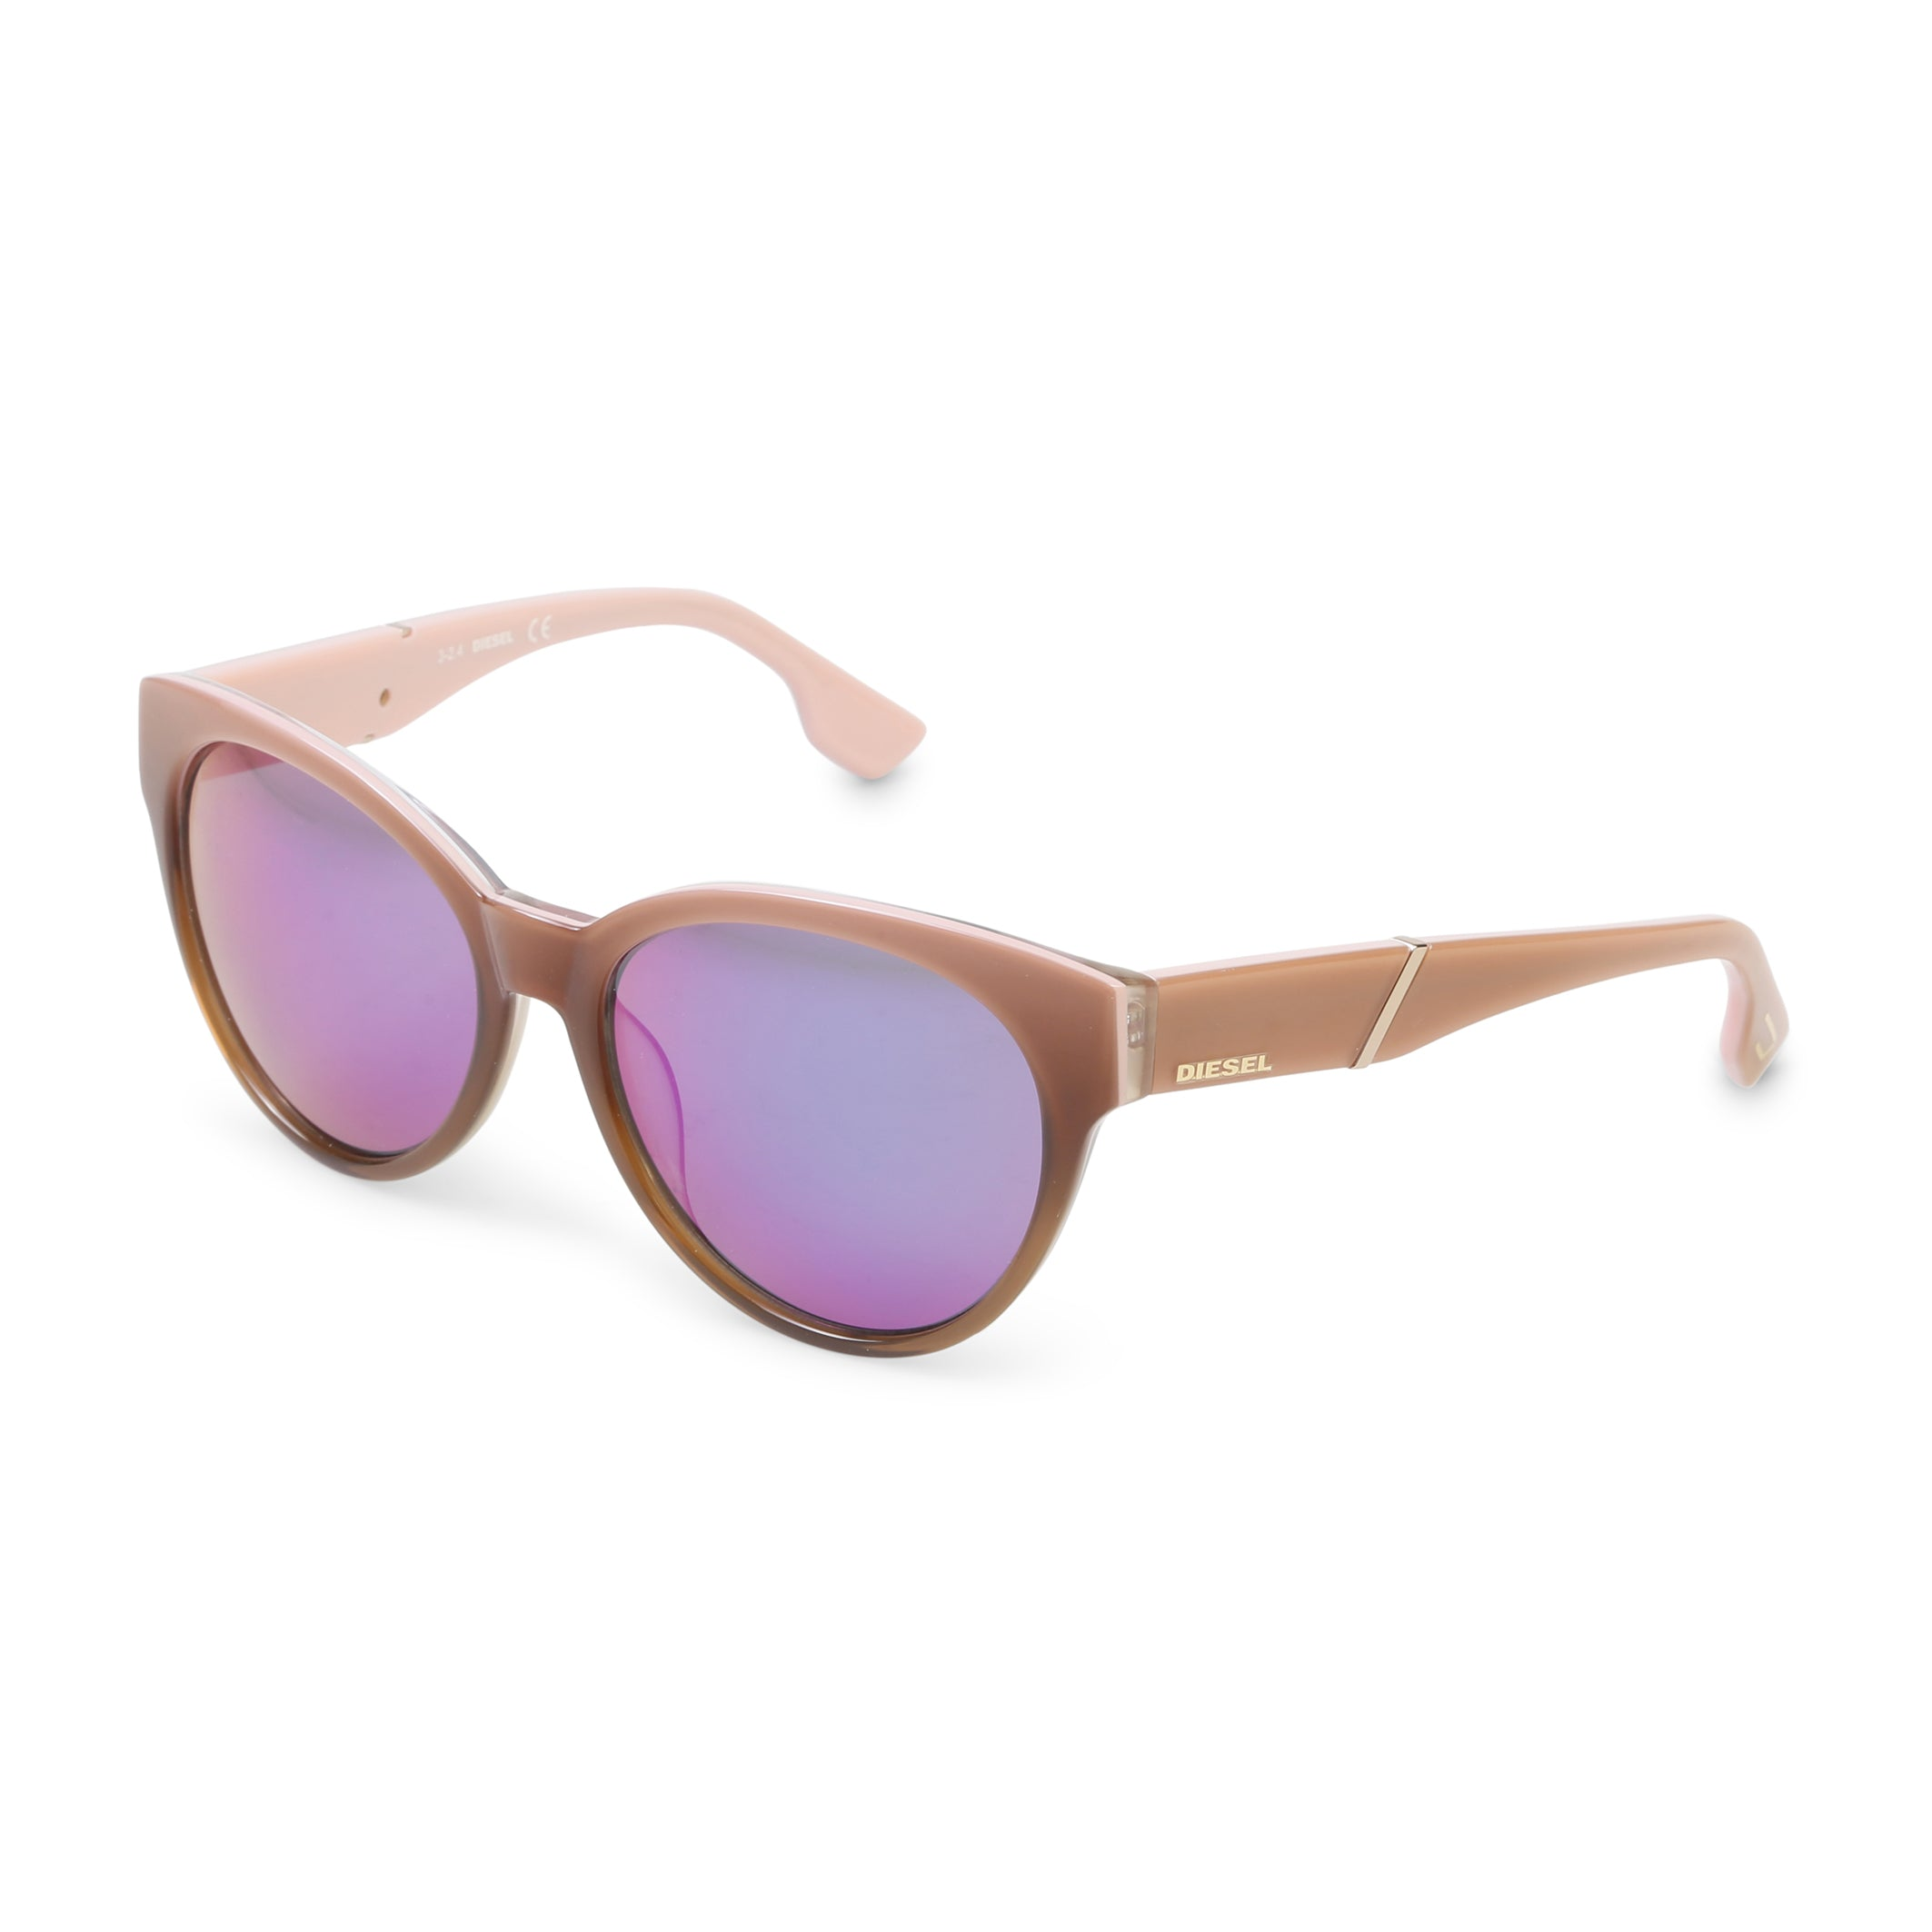 Diesel - DL0124 - Women's Sunglasses